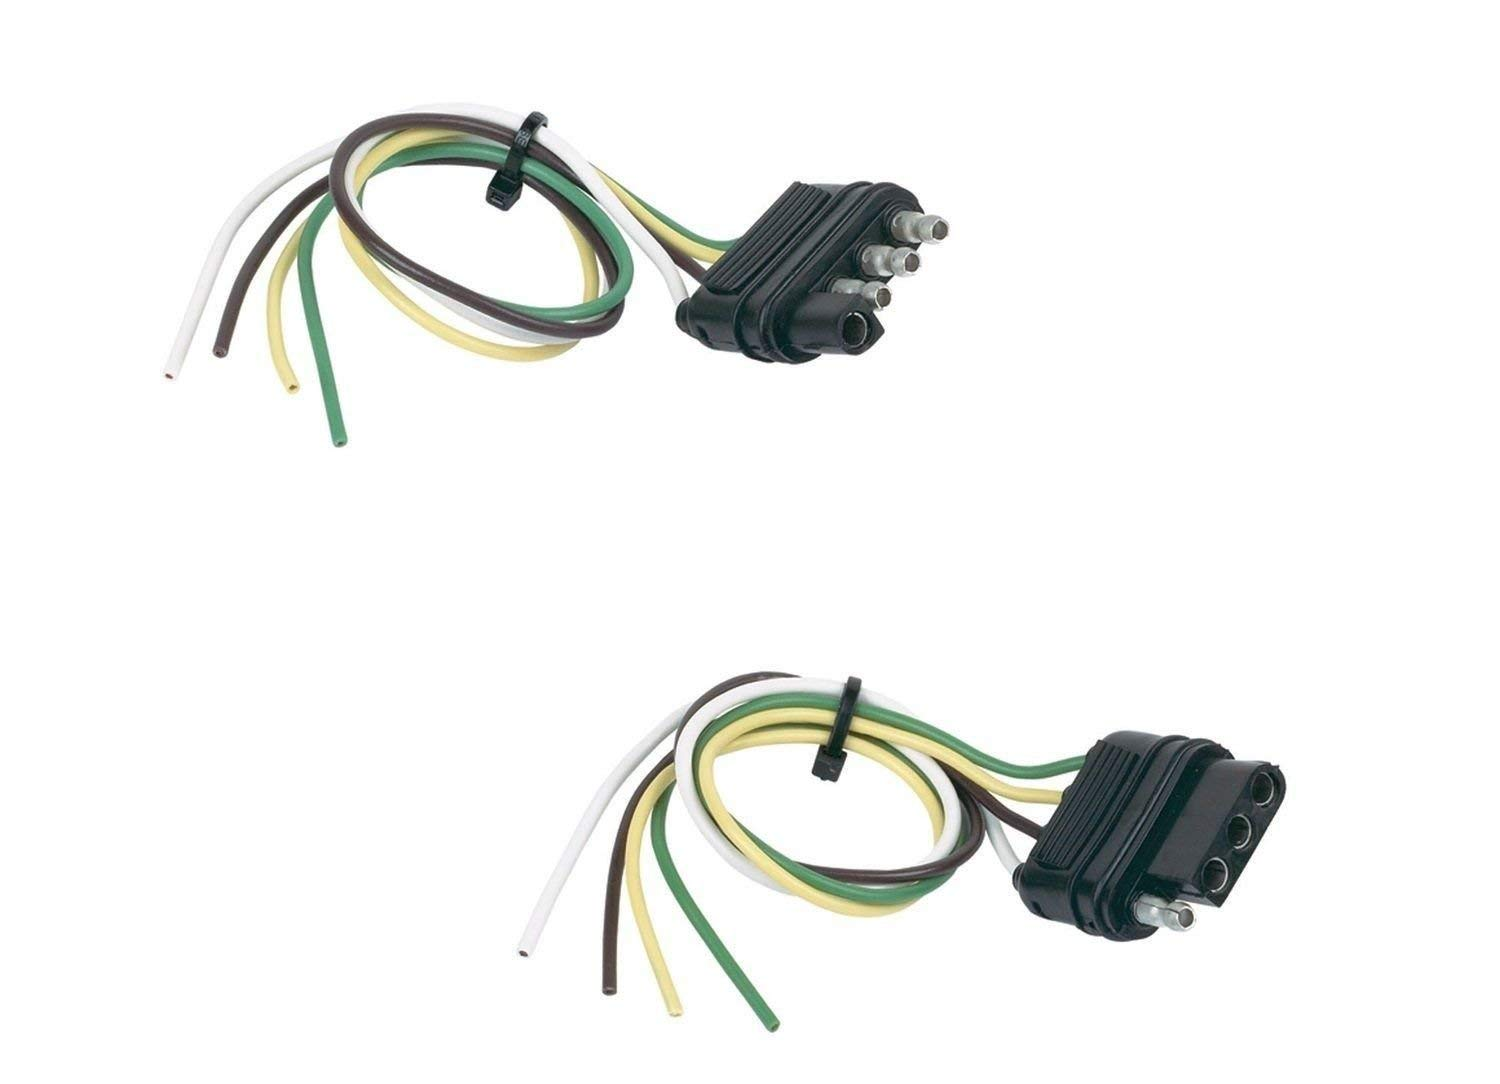 Cheap 7 Flat Trailer Wiring Find Deals On Cable Get Quotations Hopkins 48175 Basic Solution 4 Wire Vehicle Side